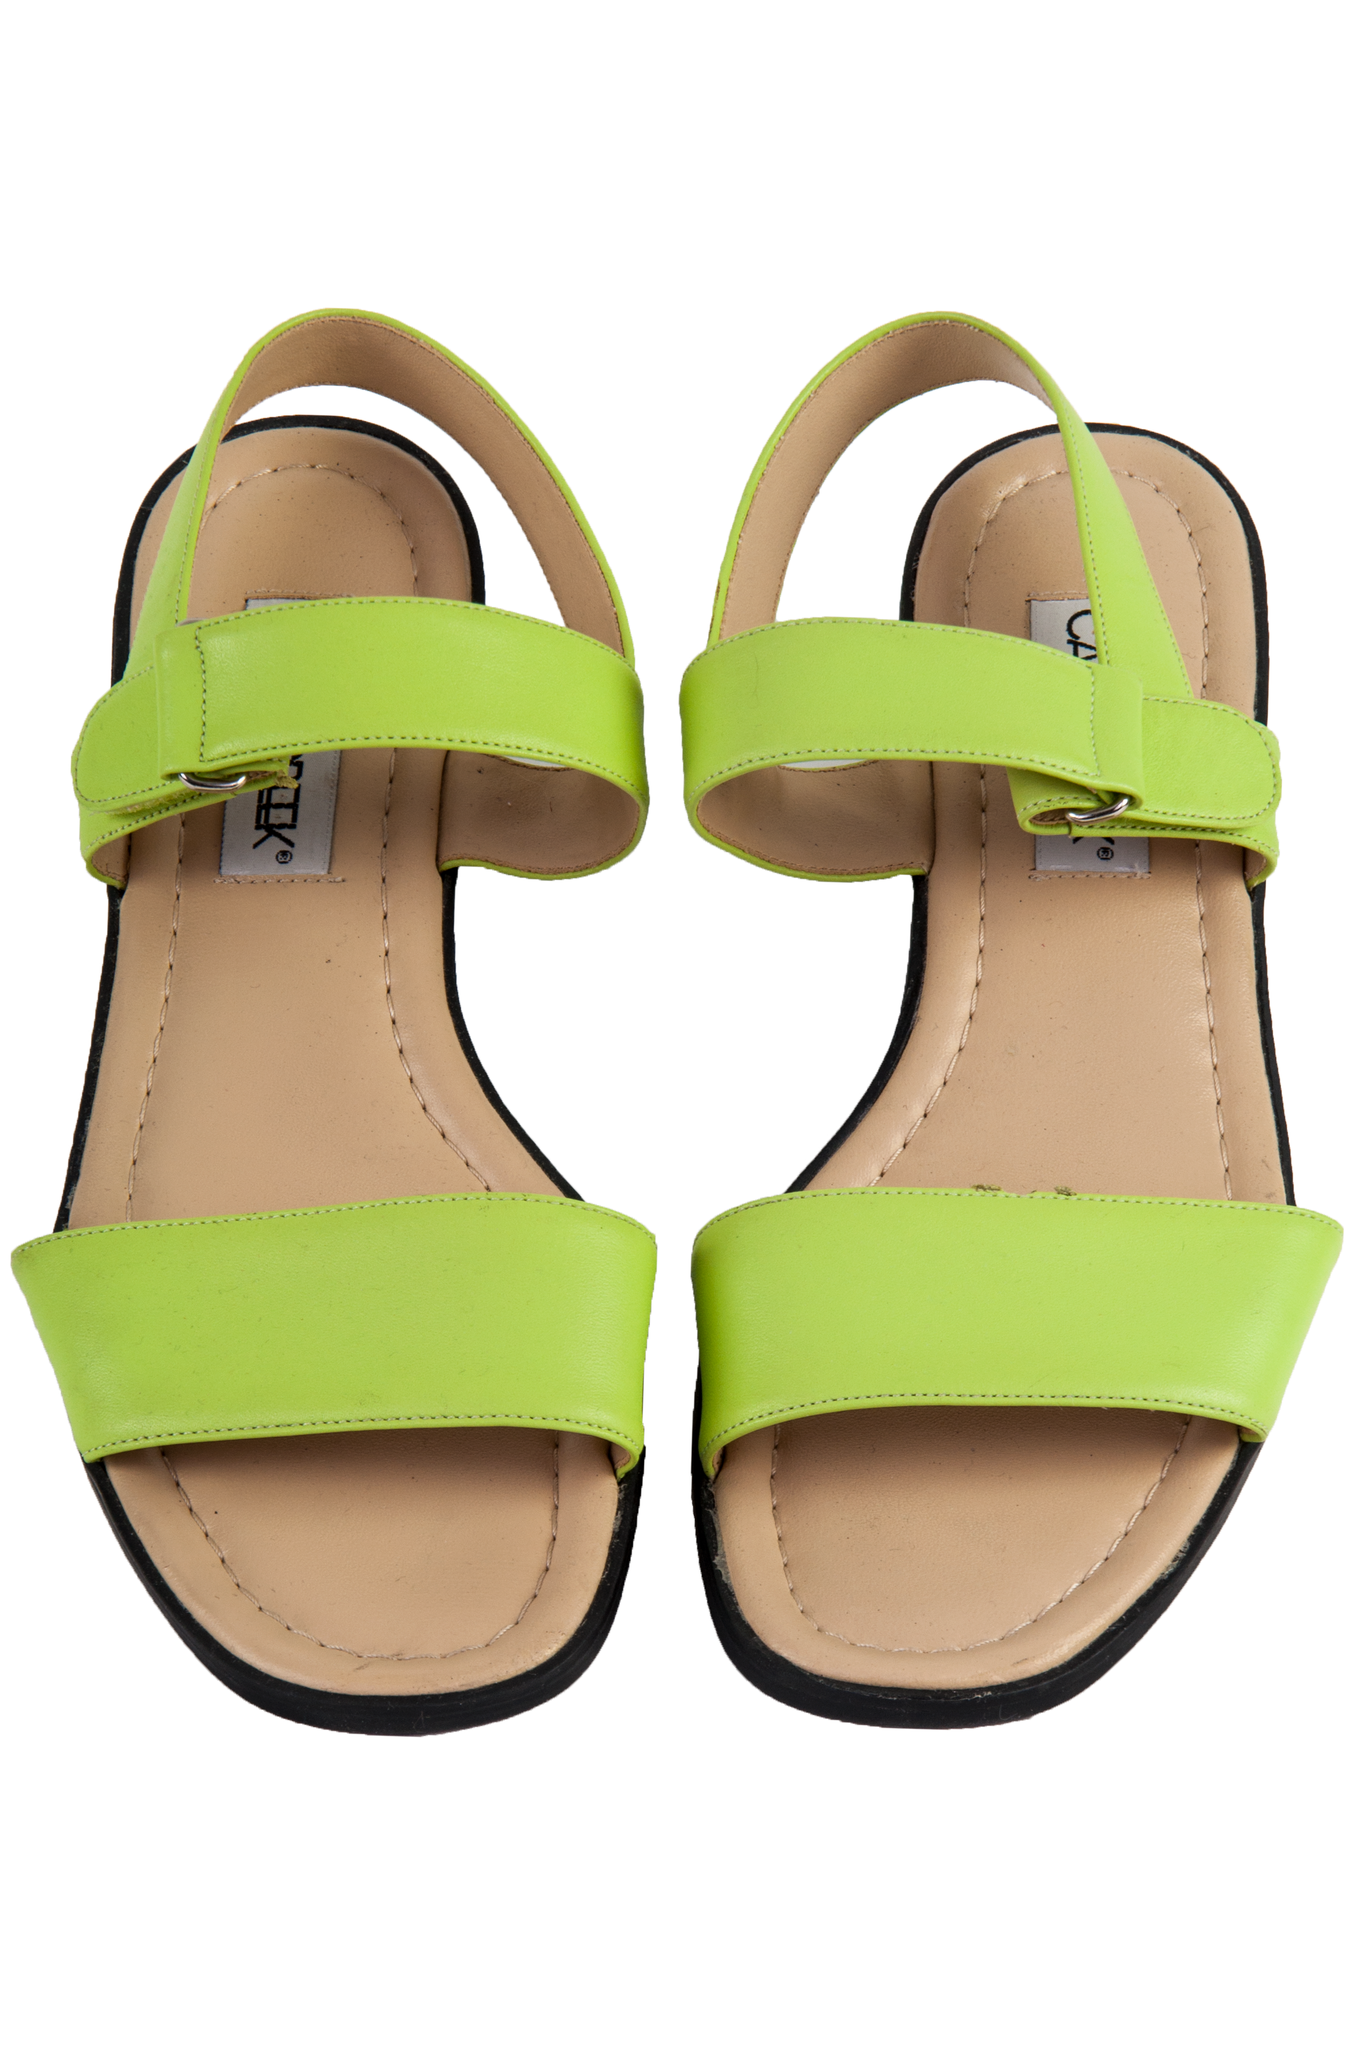 neon green leather sandals from the 90s